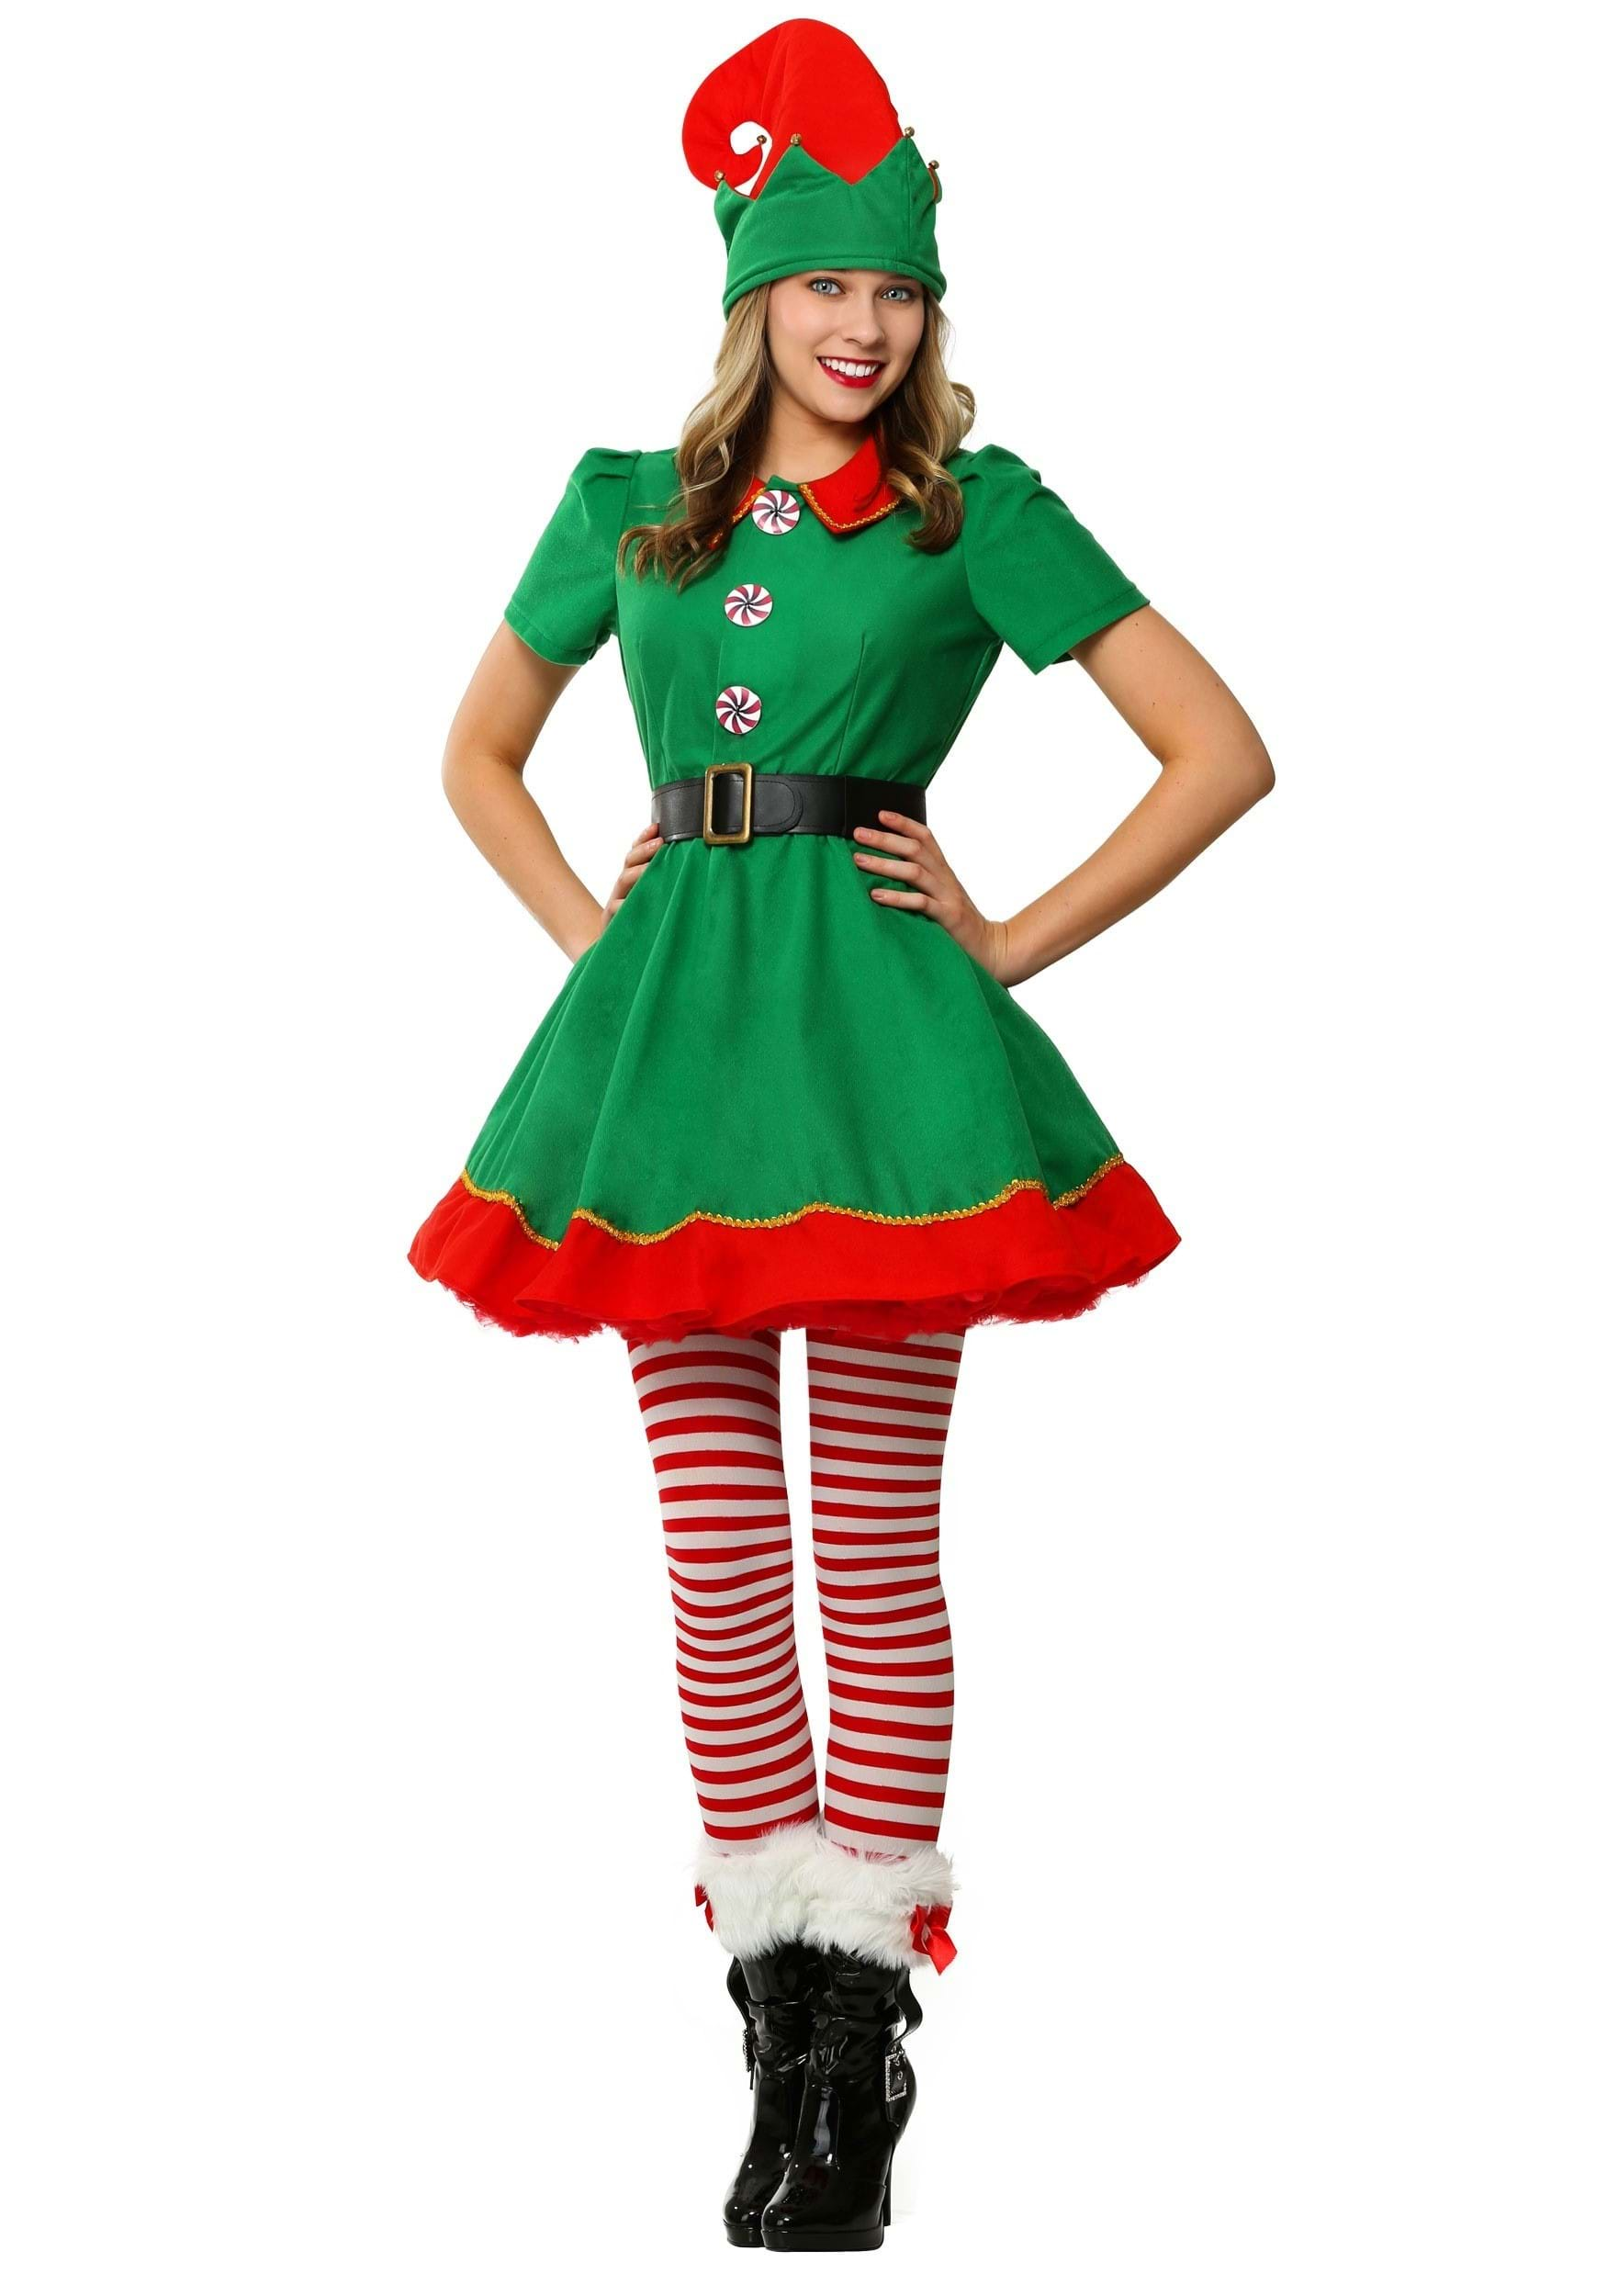 64a8726d801e1 Christmas Costumes   Santa Claus Suits